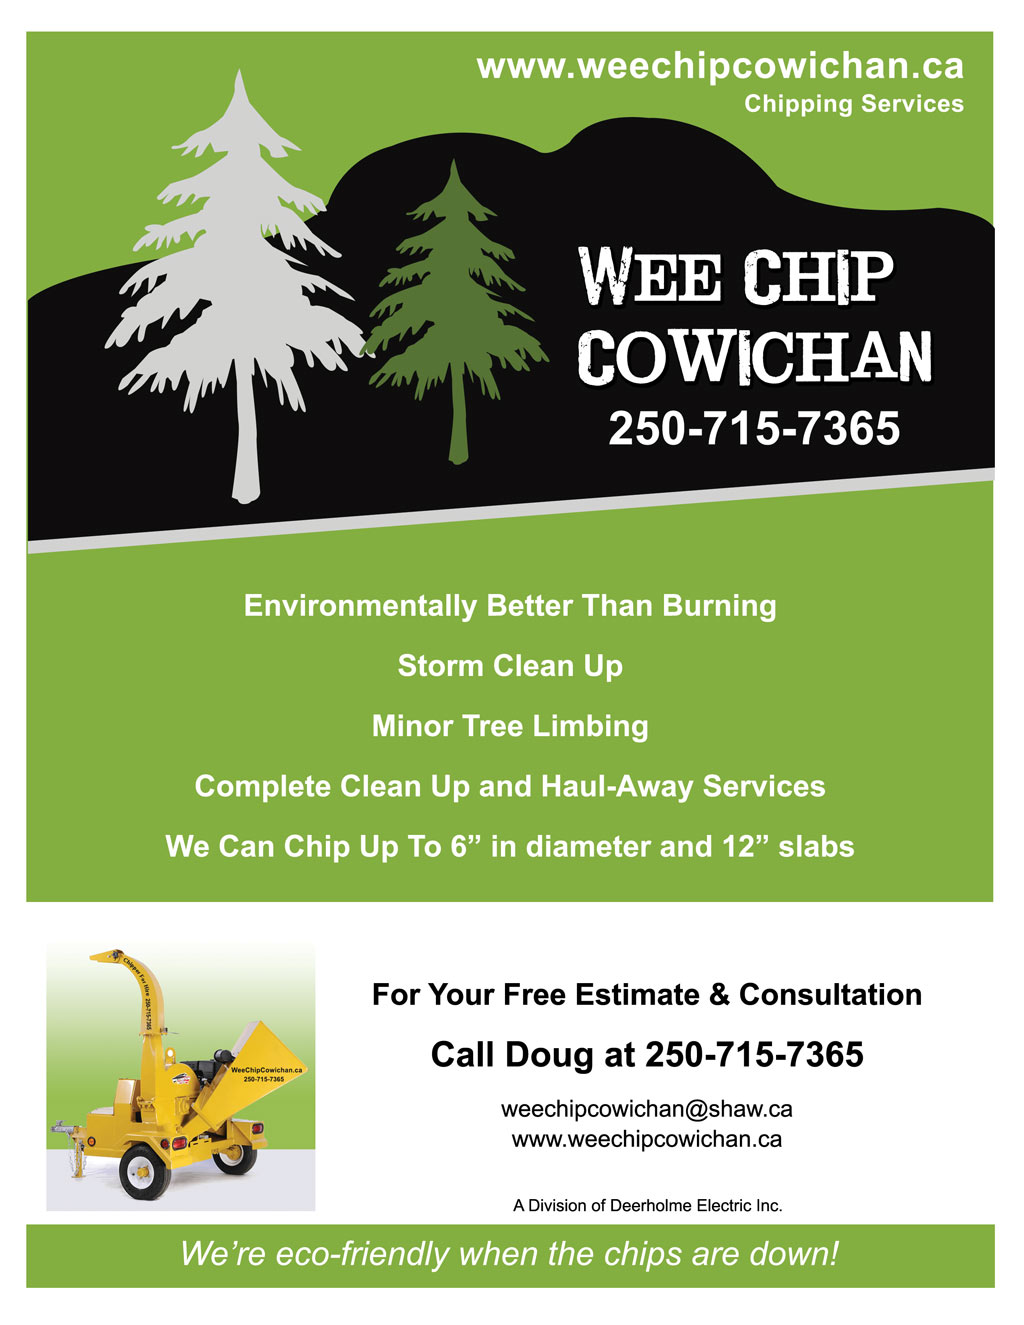 Wee Chip Cowichan - Look for our posters in Cobble Hill, Duncan, Chemainus, Ladysmith & Nanaimo!